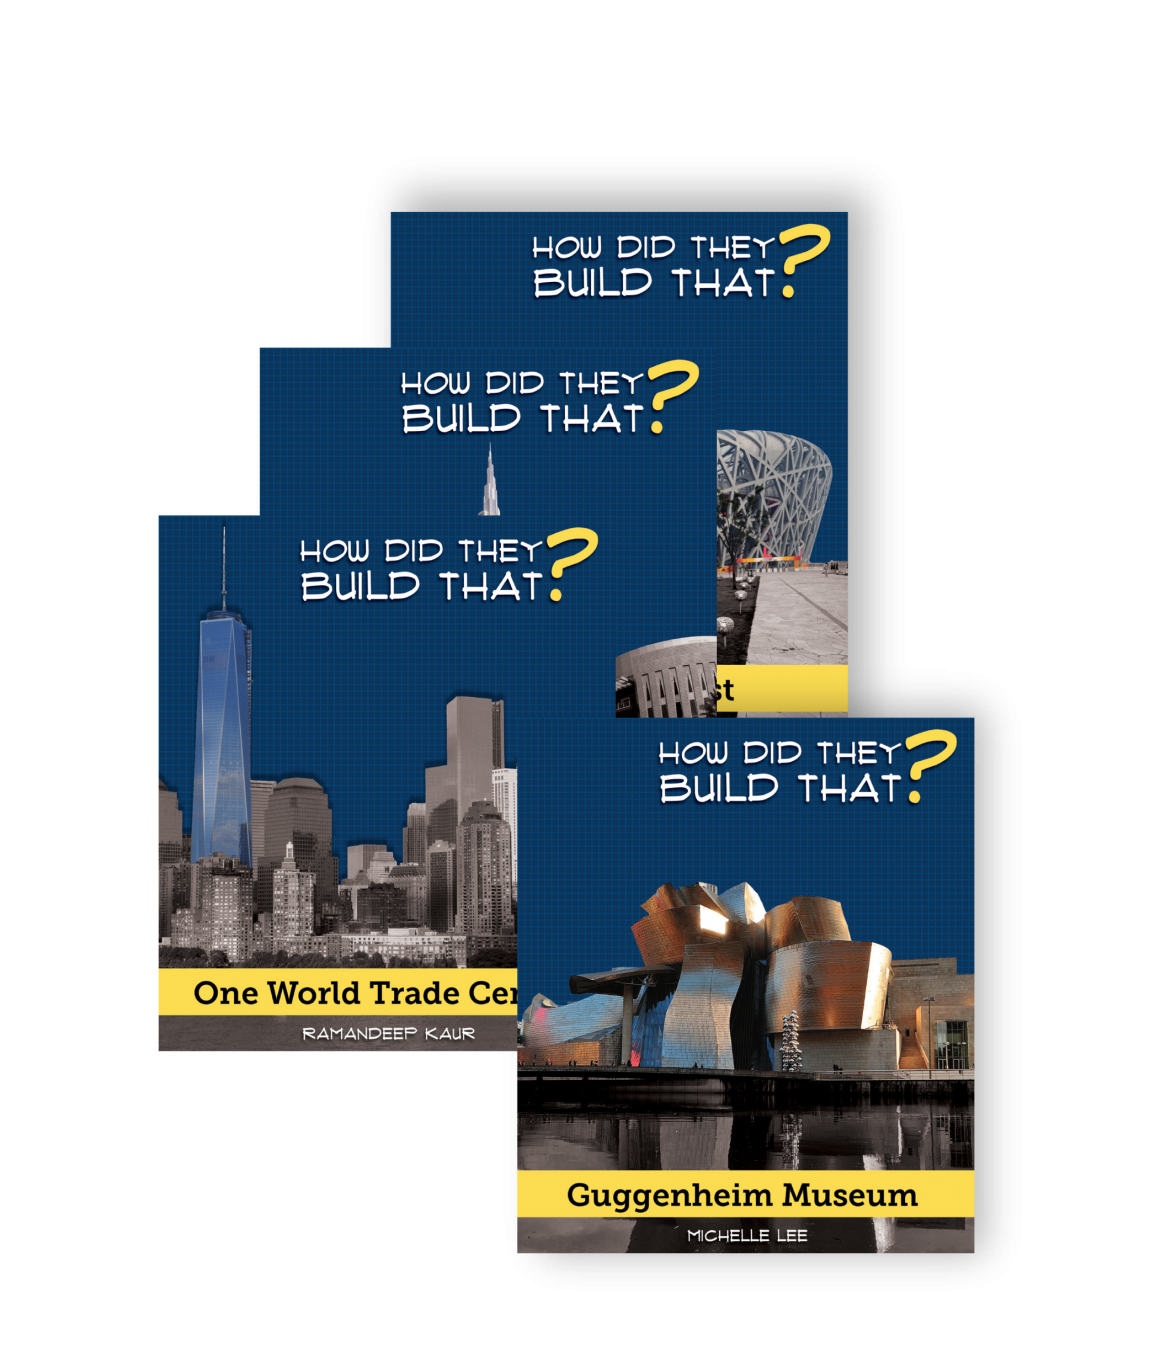 How-Did-They-Build-That-Series-Covers-01.png